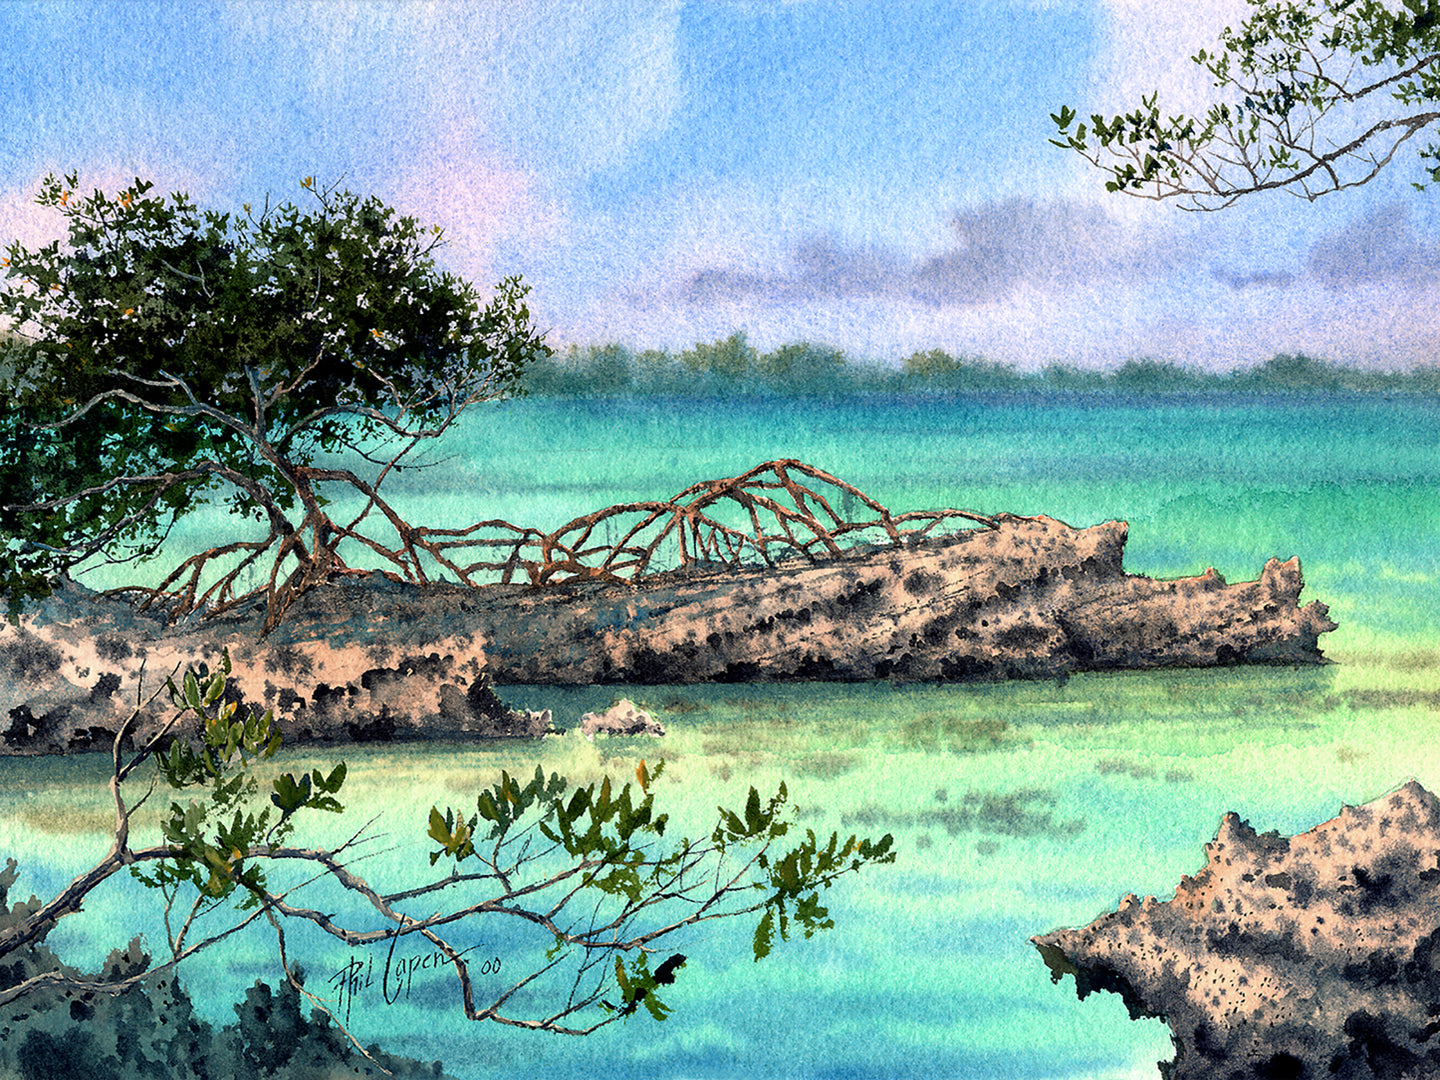 Mangrove on the Rocks